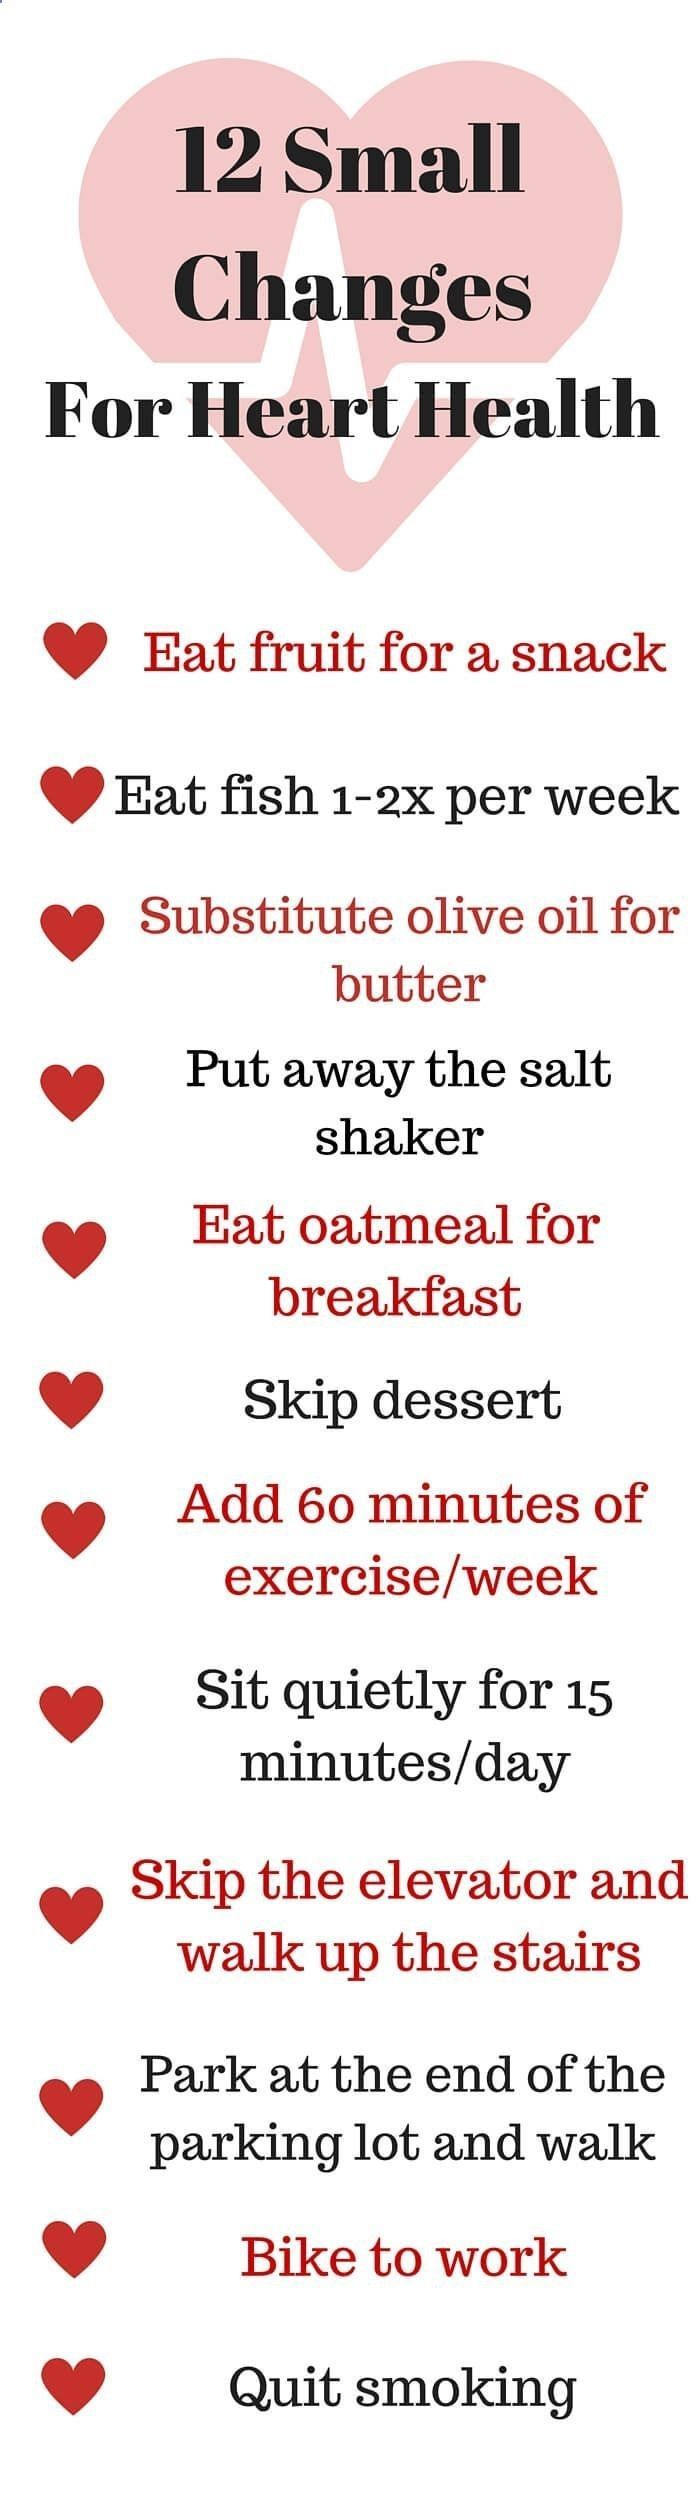 """Program Weight Loss - 12 Small Changes For Heart Health - small changes can add up to make a big difference for heart failure For starters, the E Factor Diet is an online weight-loss program. The ingredients include """"simple real foods"""" found at local grocery stores."""